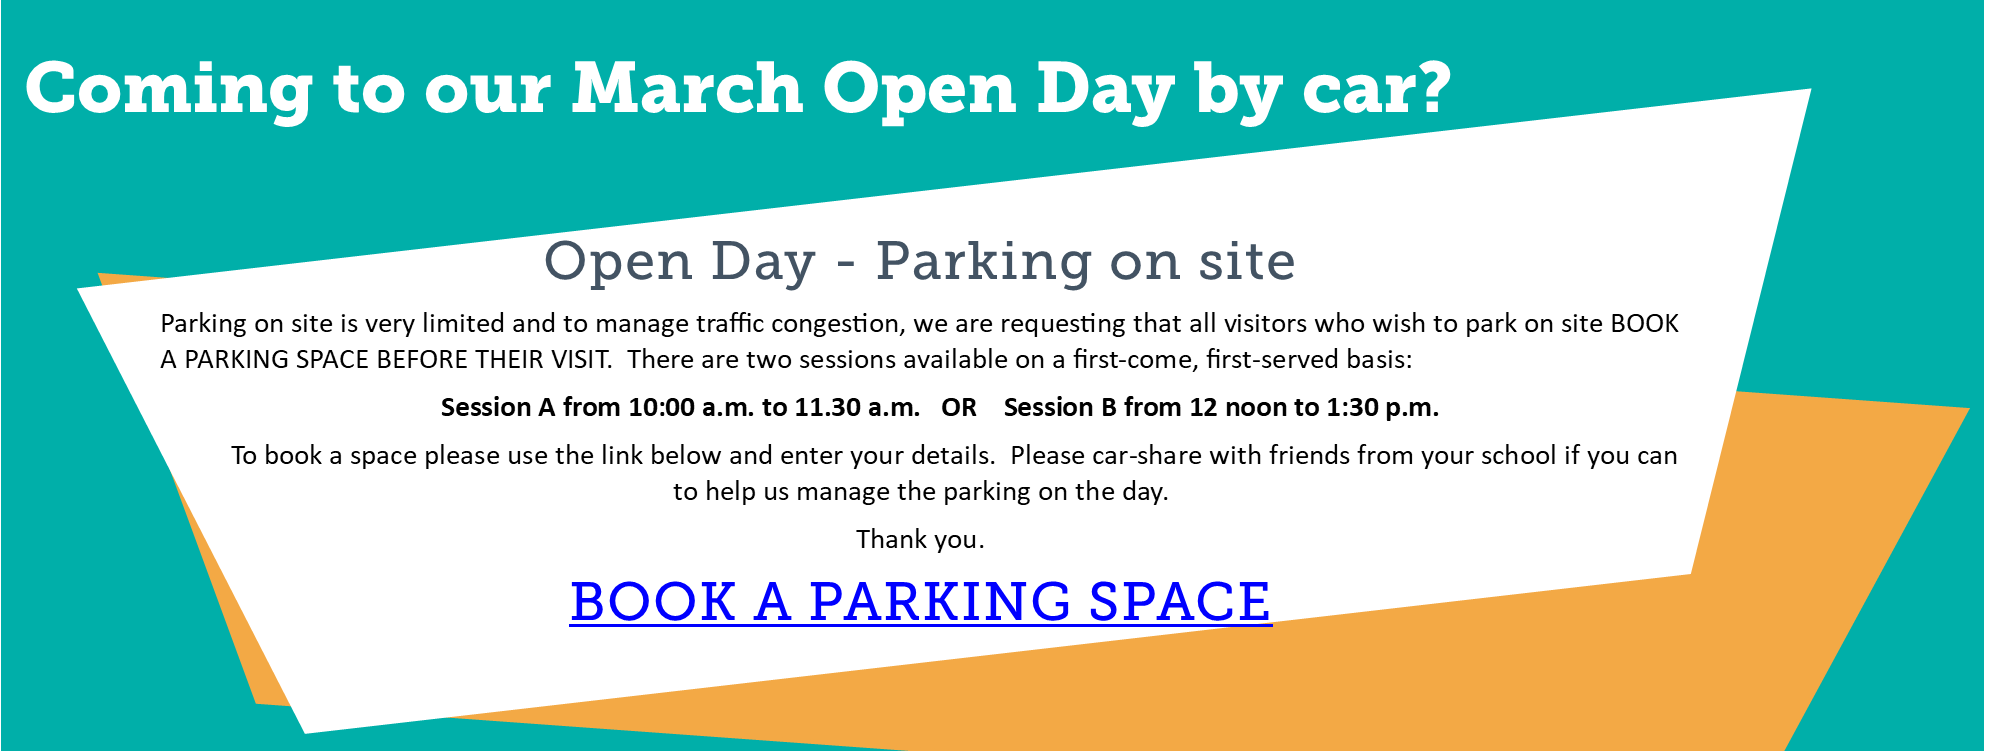 March Open Day 2020